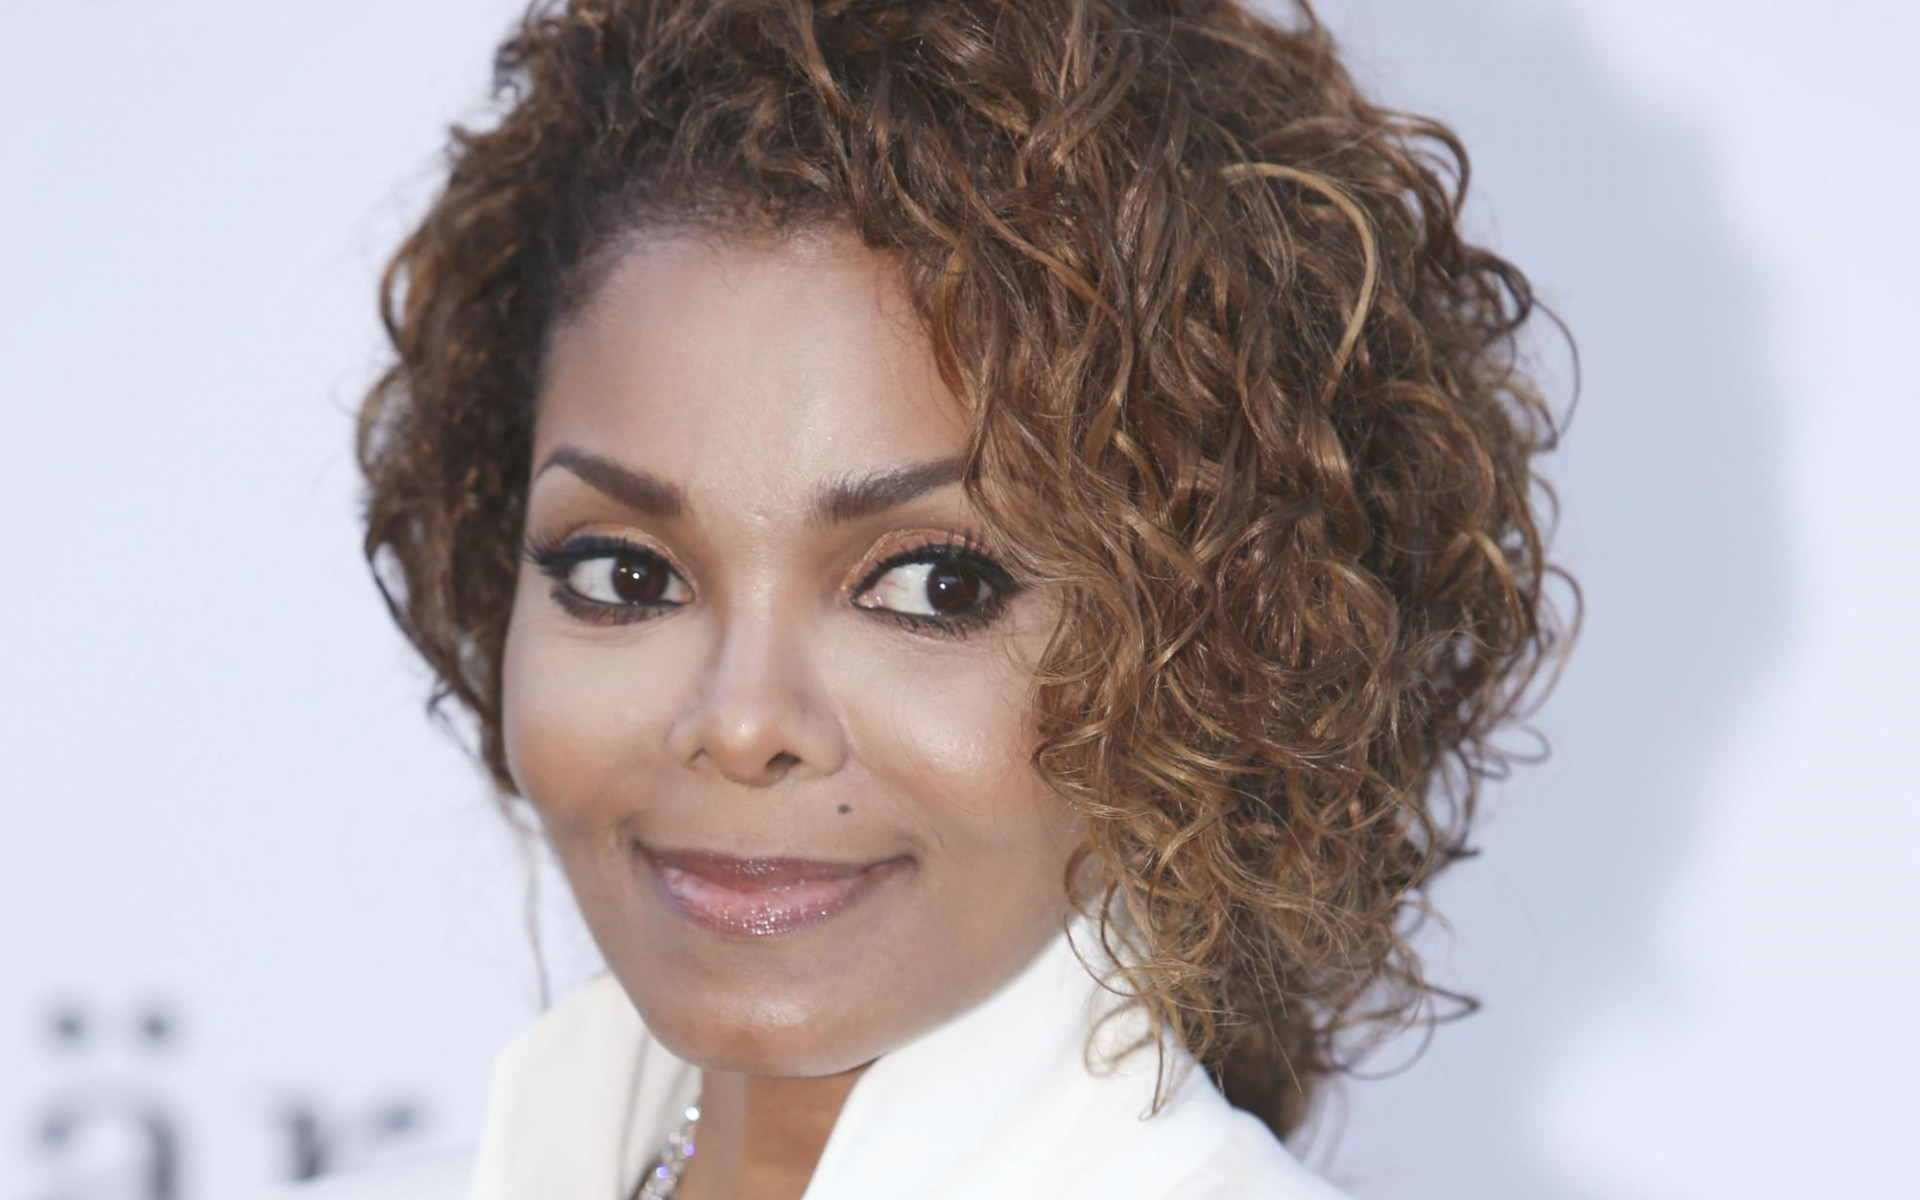 1920x1200  Wallpaper janet jackson, bet awards, 2015, person, smile